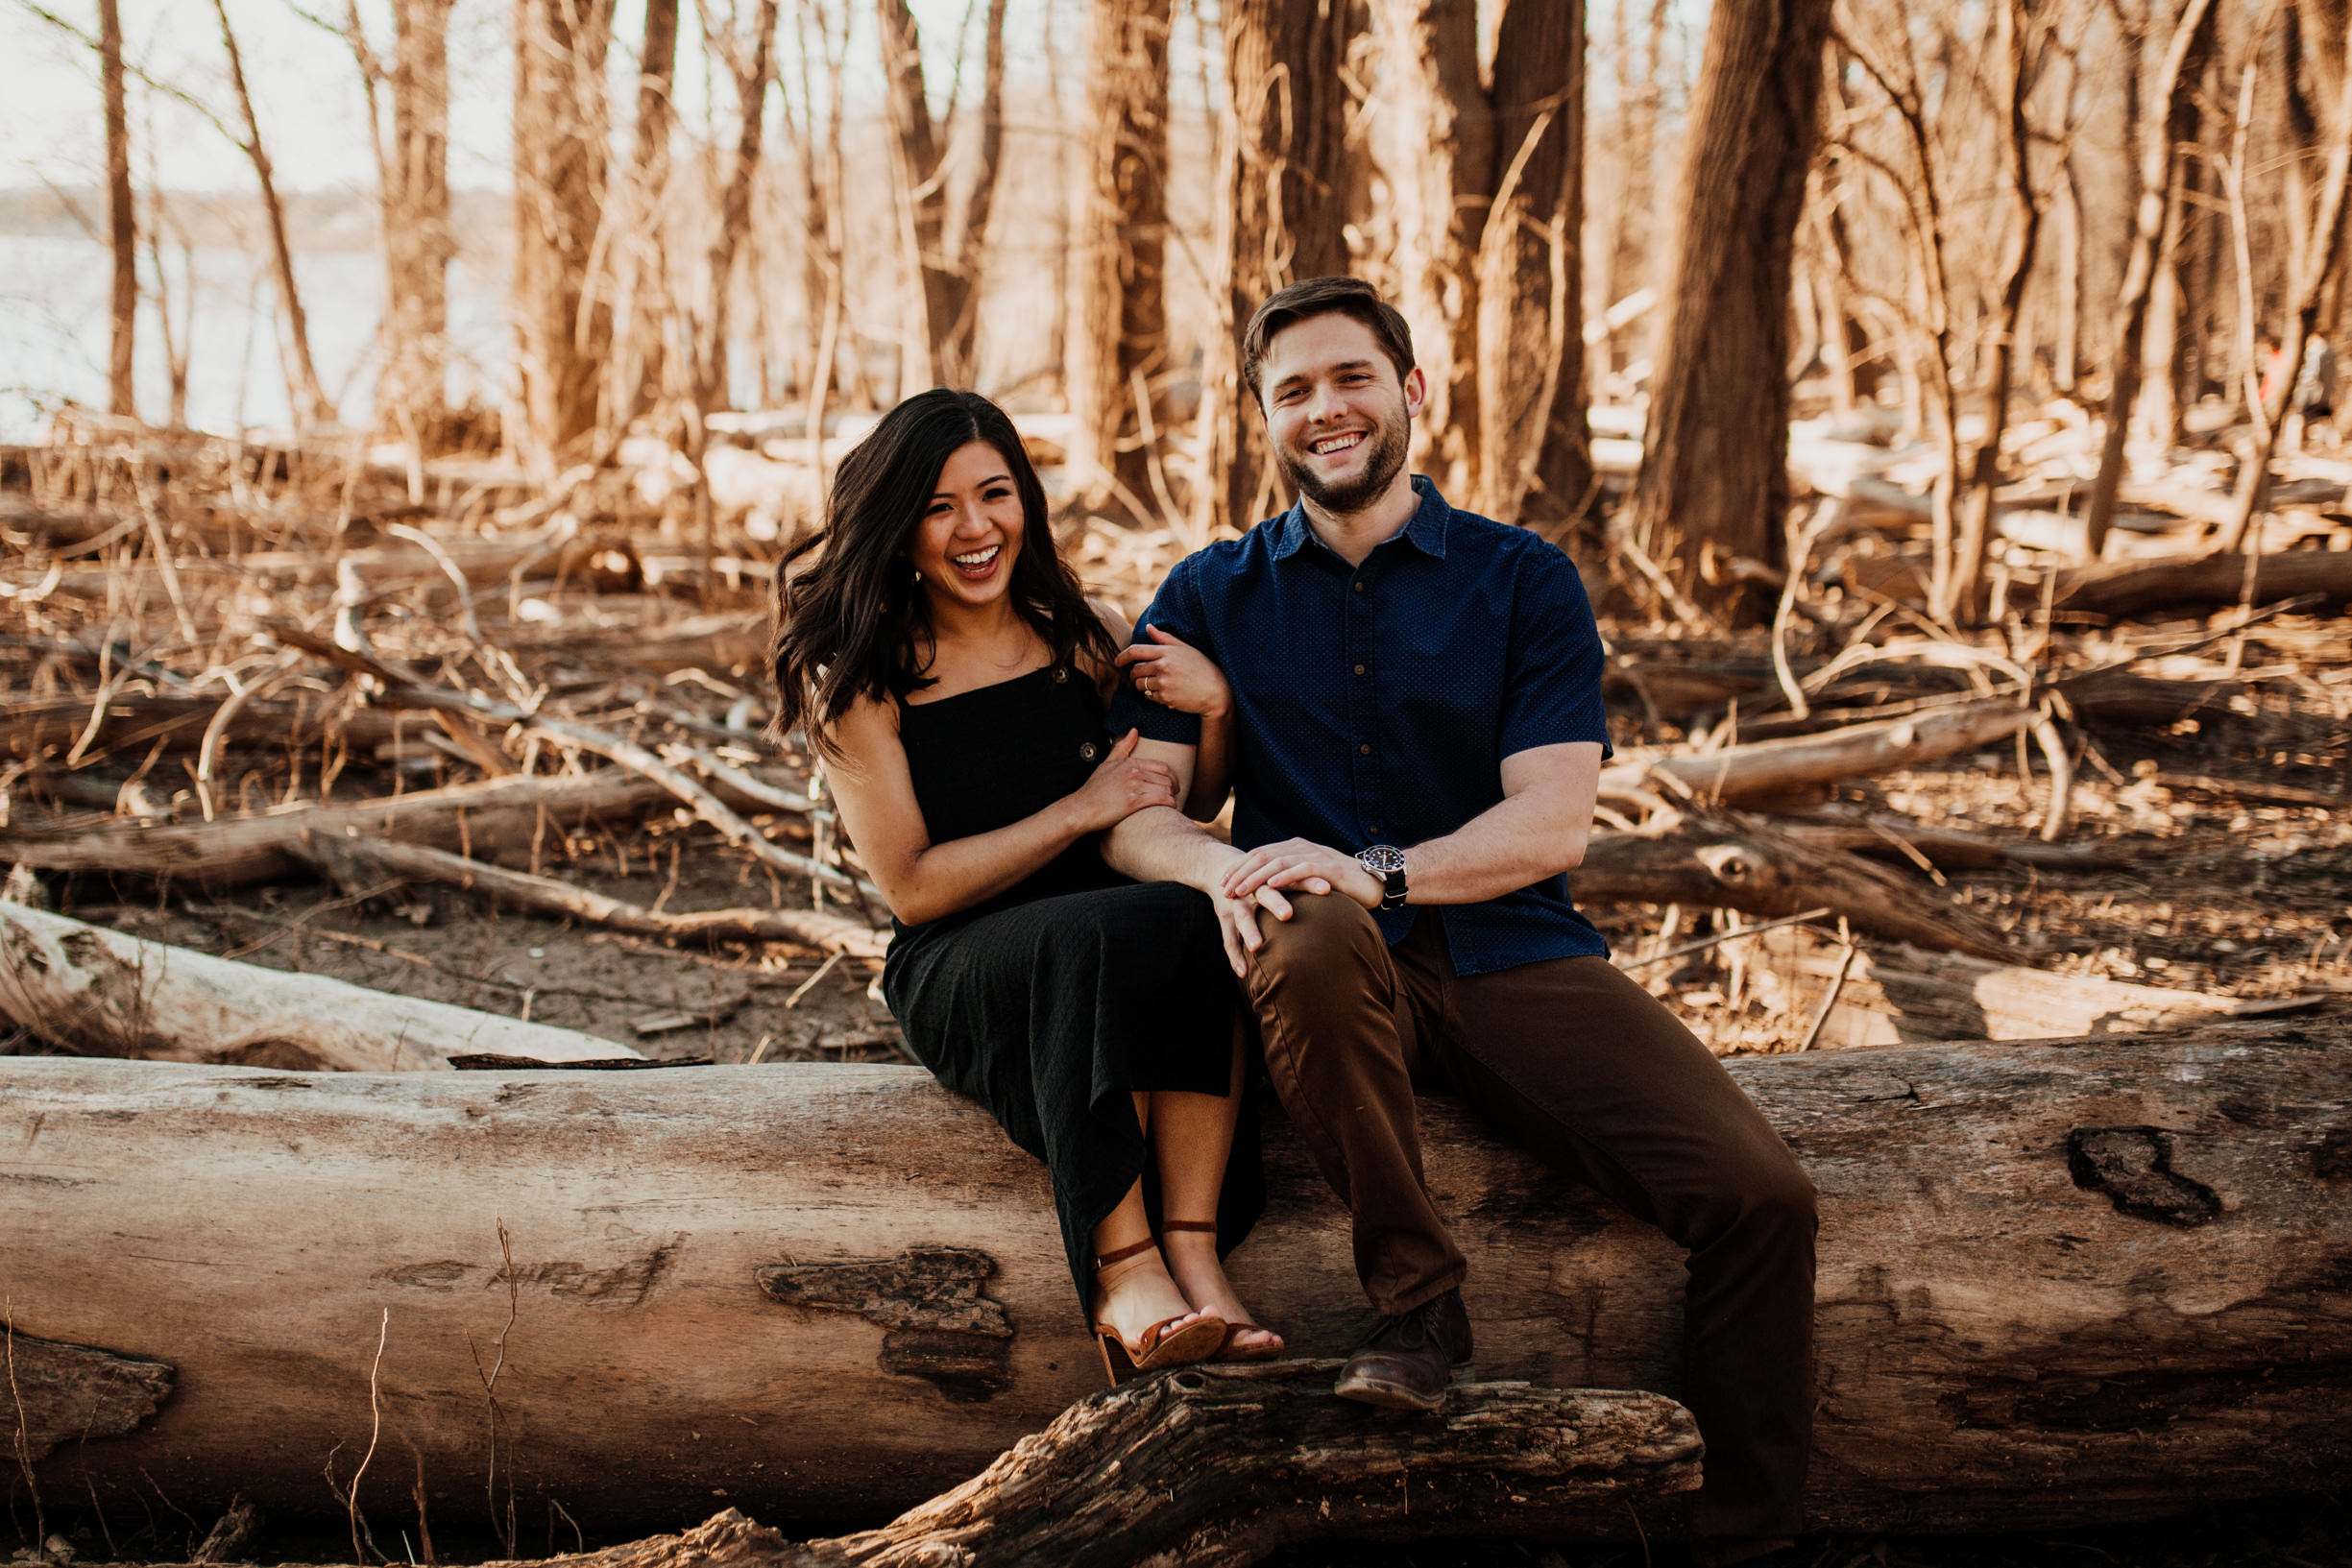 louisville-engagement-photographer-crystal-ludwick-photo-tammy-and-caleb-engagement-photography (7 of 32).jpg